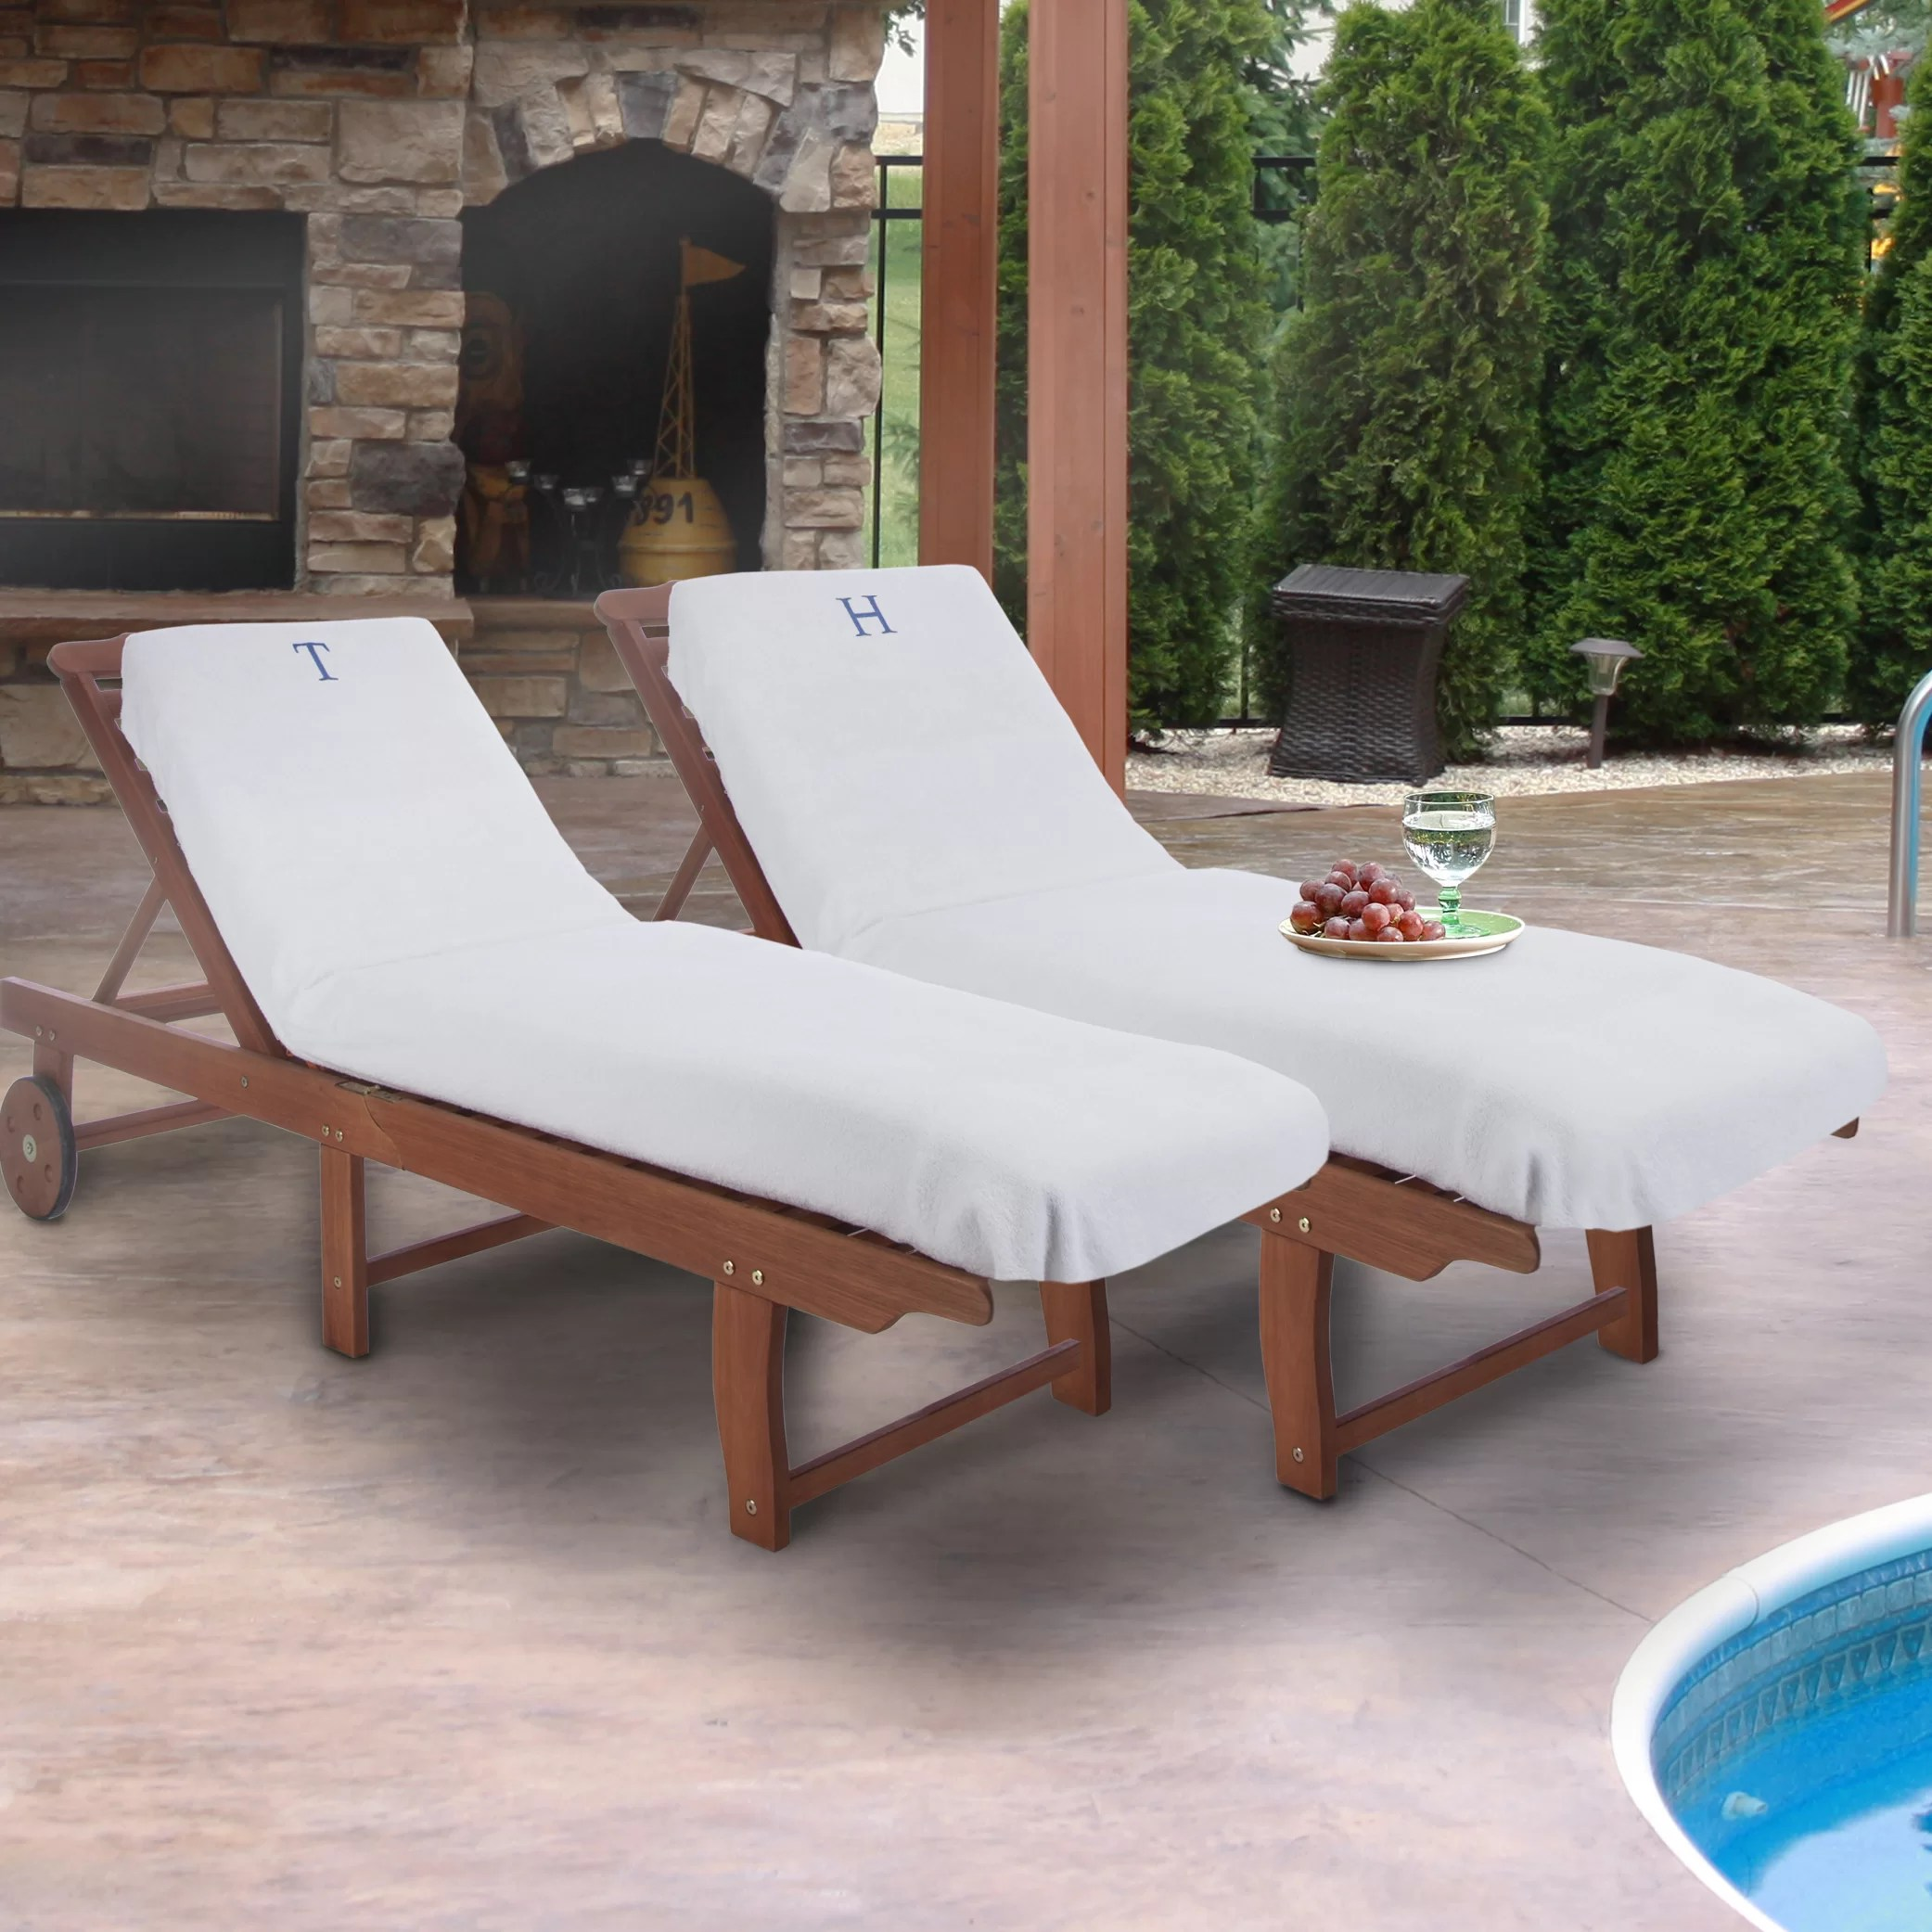 Pool Chaise Lounge Chairs Ebern Designs Superior Patio Chaise Lounge Cover Reviews Wayfair